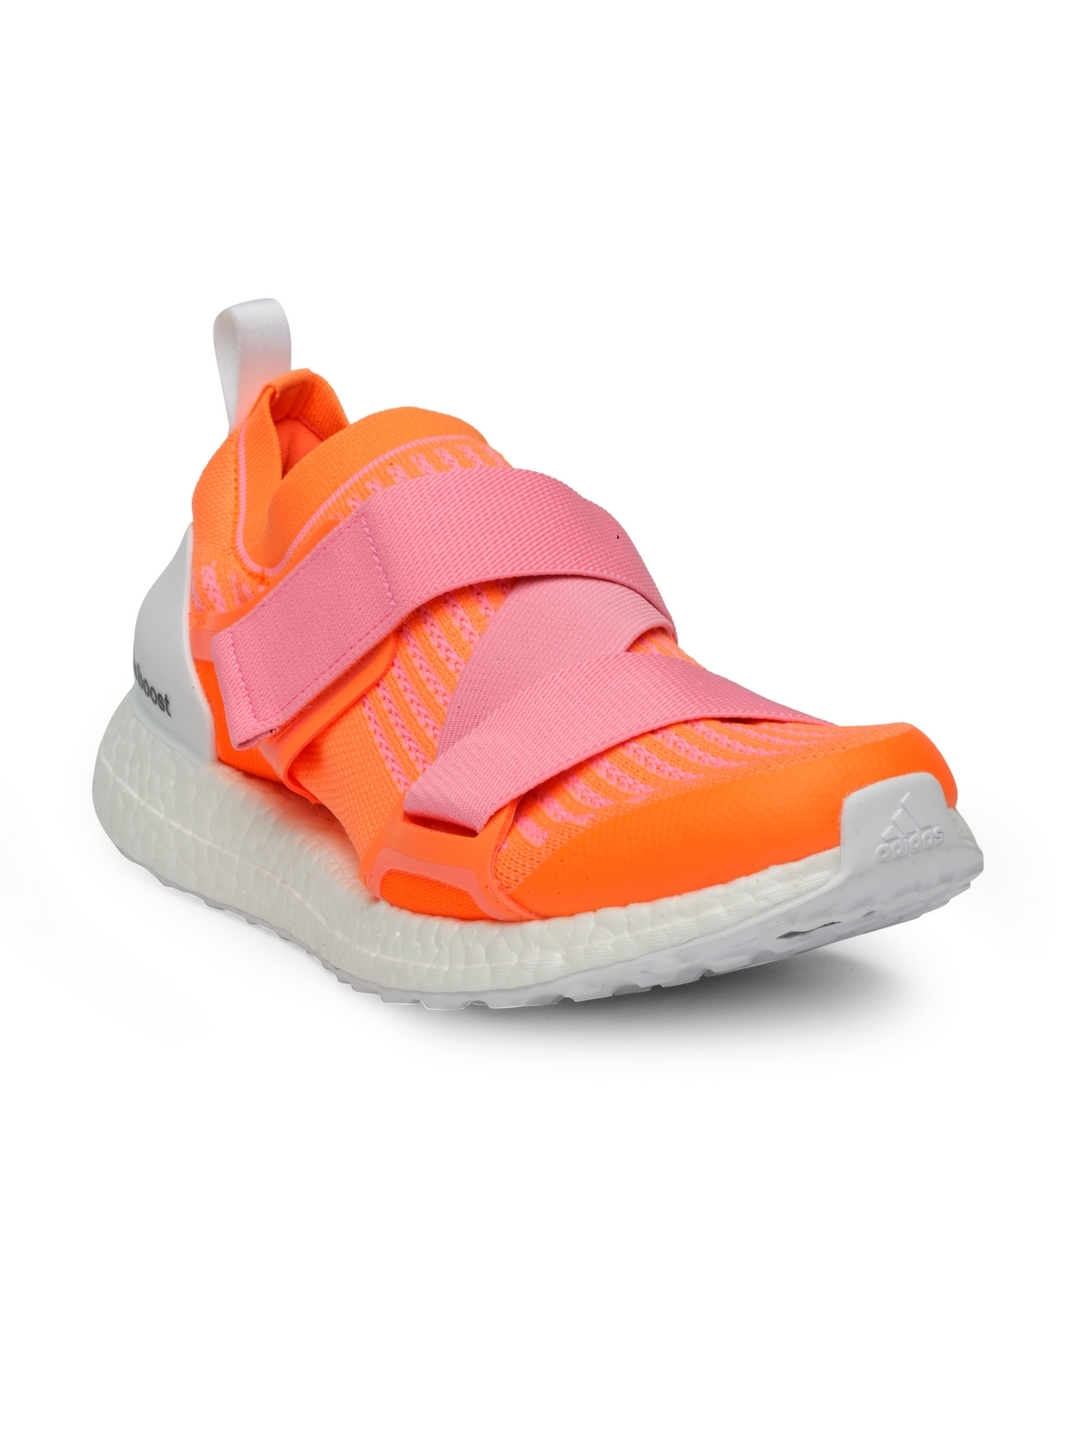 de3b35db503 Buy Stella McCartney By ADIDAS Women Orange Ultraboost X Running ...